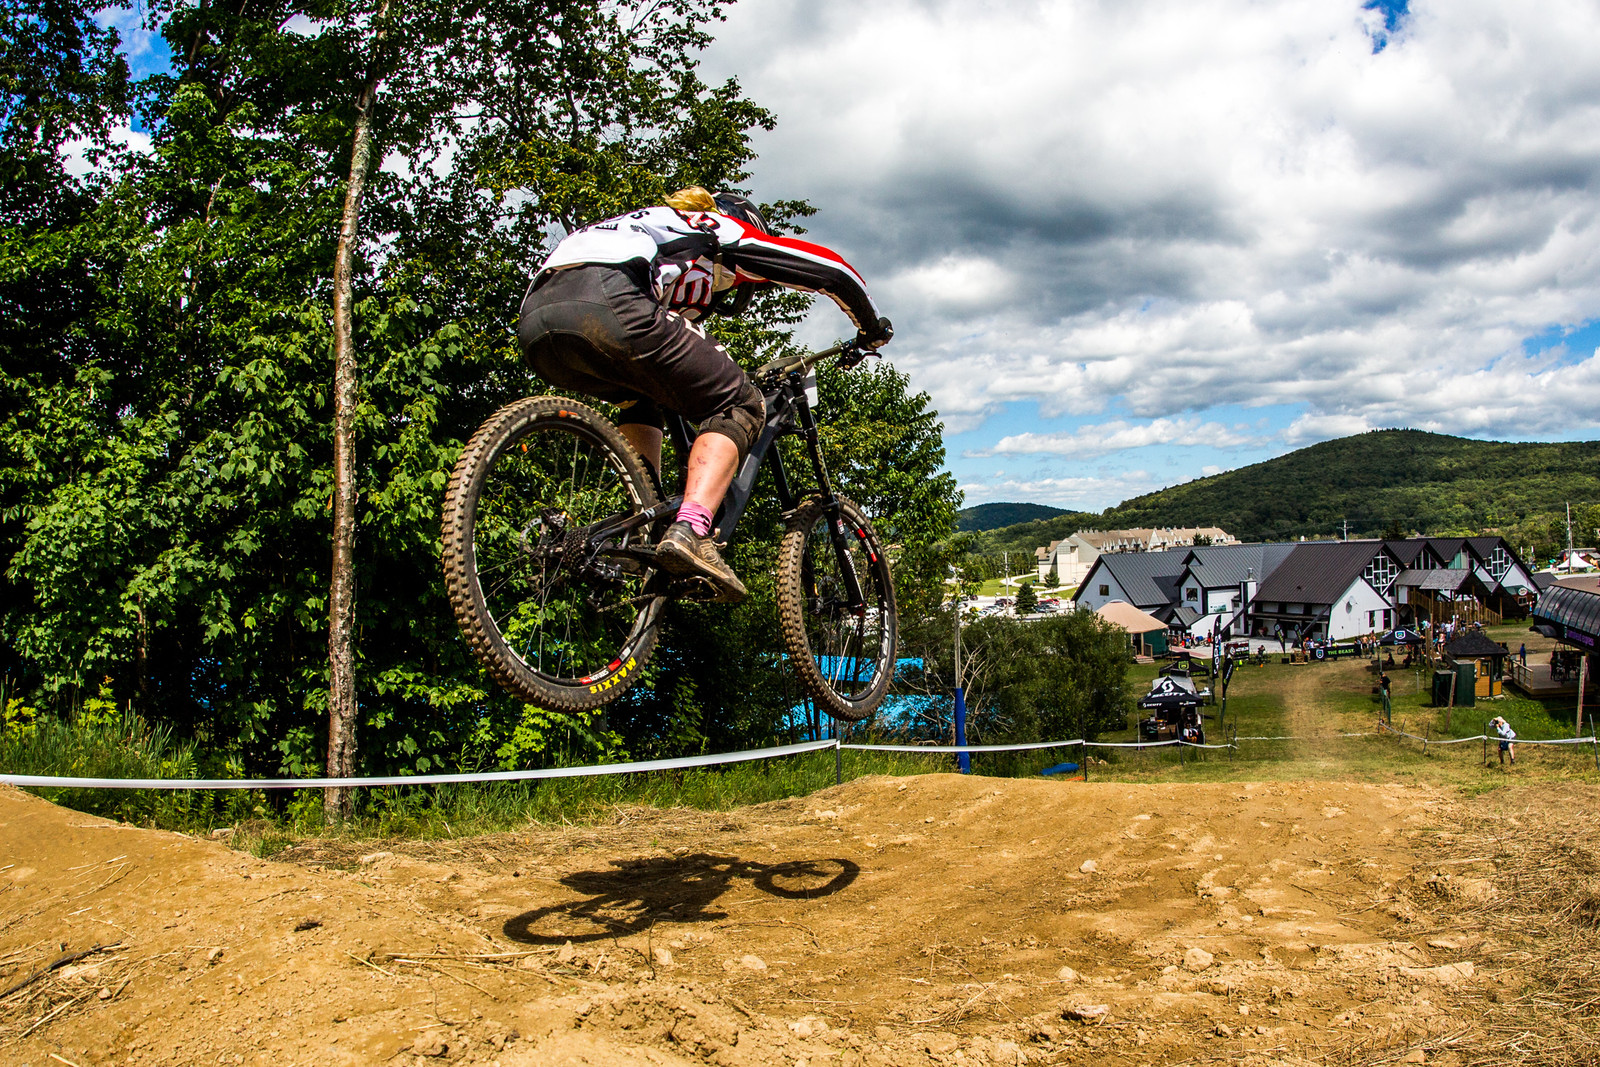 From Skier Cross to DH MTB, Killington local Mazie Hayden is quickly affirming her place in people's minds as an all around badass. 1st place in Junior Women, remember her name.